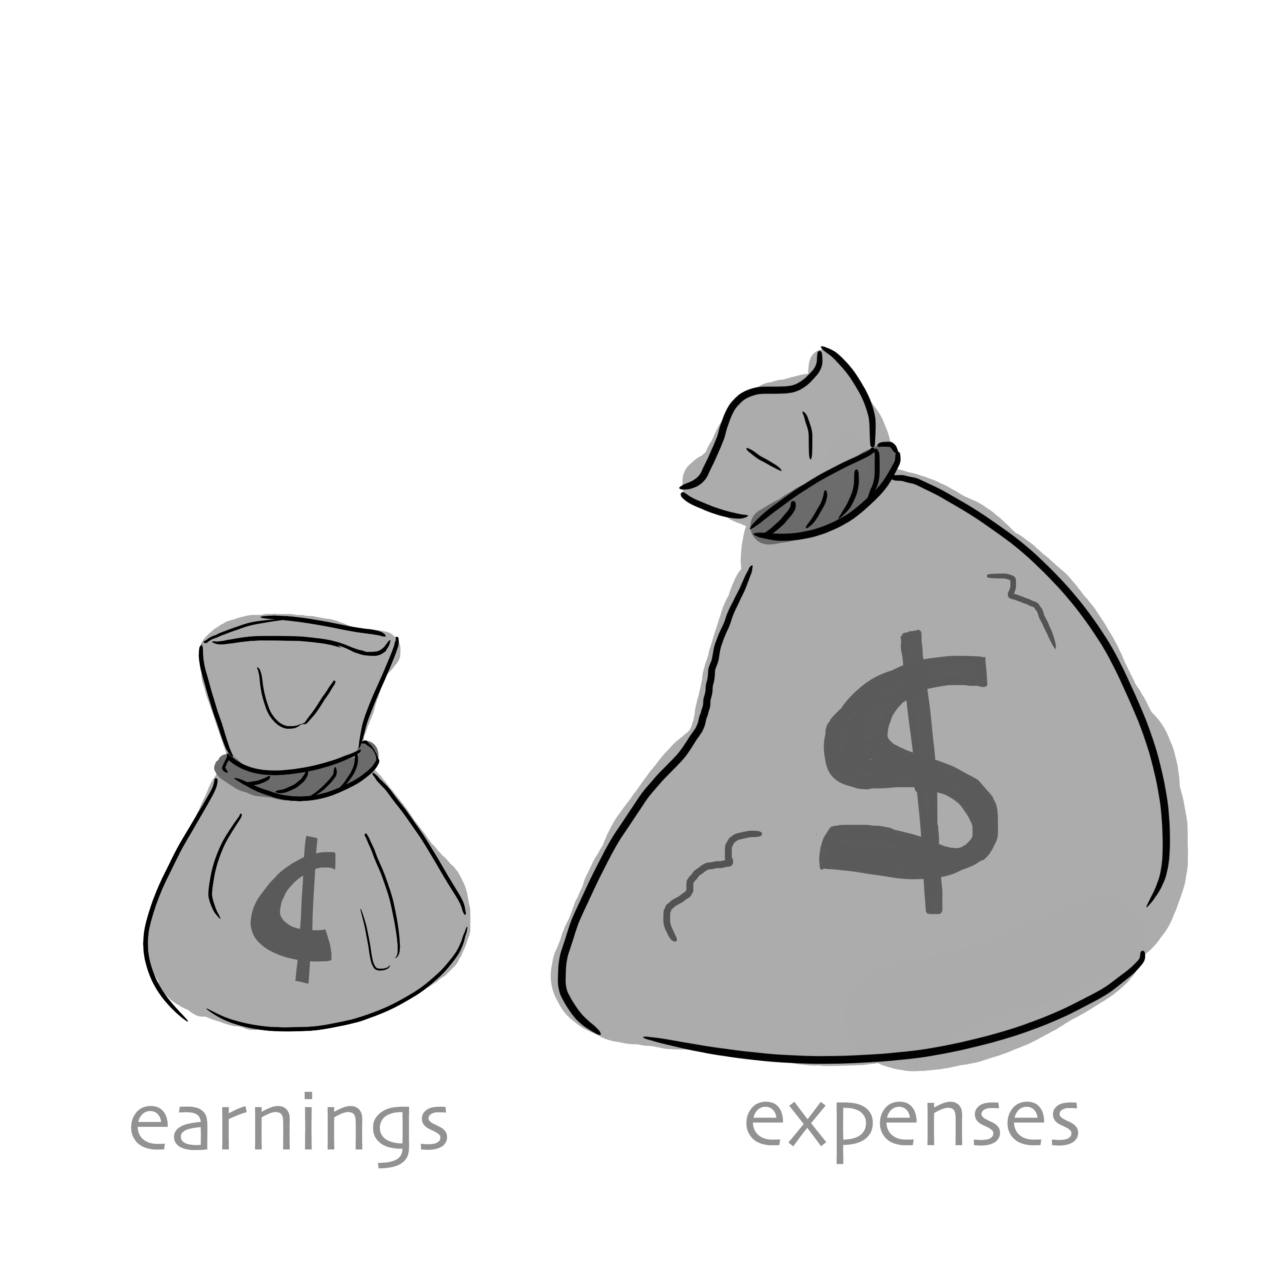 GUSD+is+spending+more+than+it+has